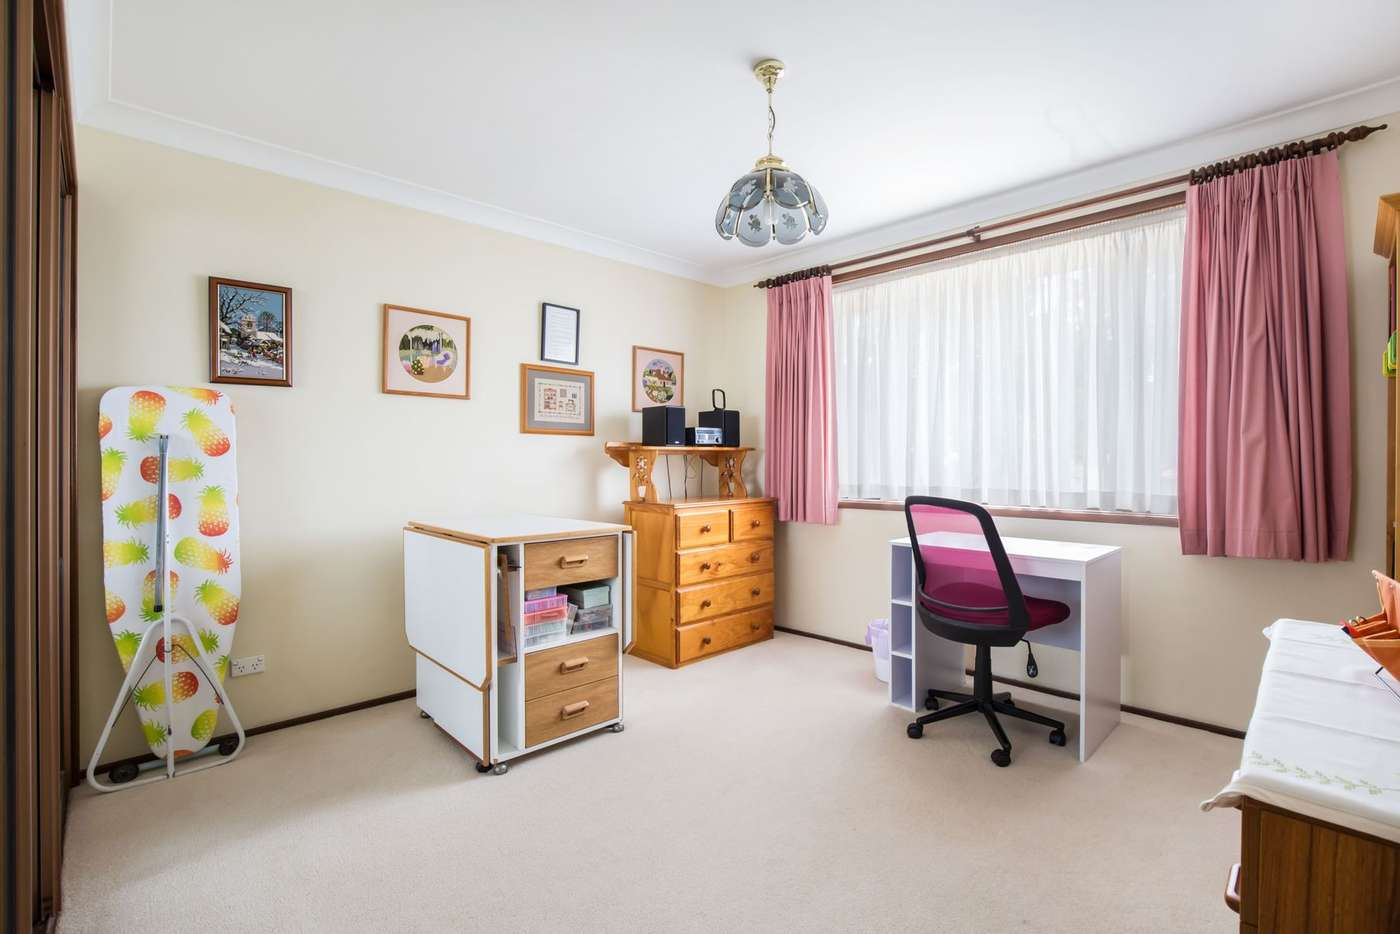 Sixth view of Homely house listing, 5 Gullalie Circle, Blaxland NSW 2774